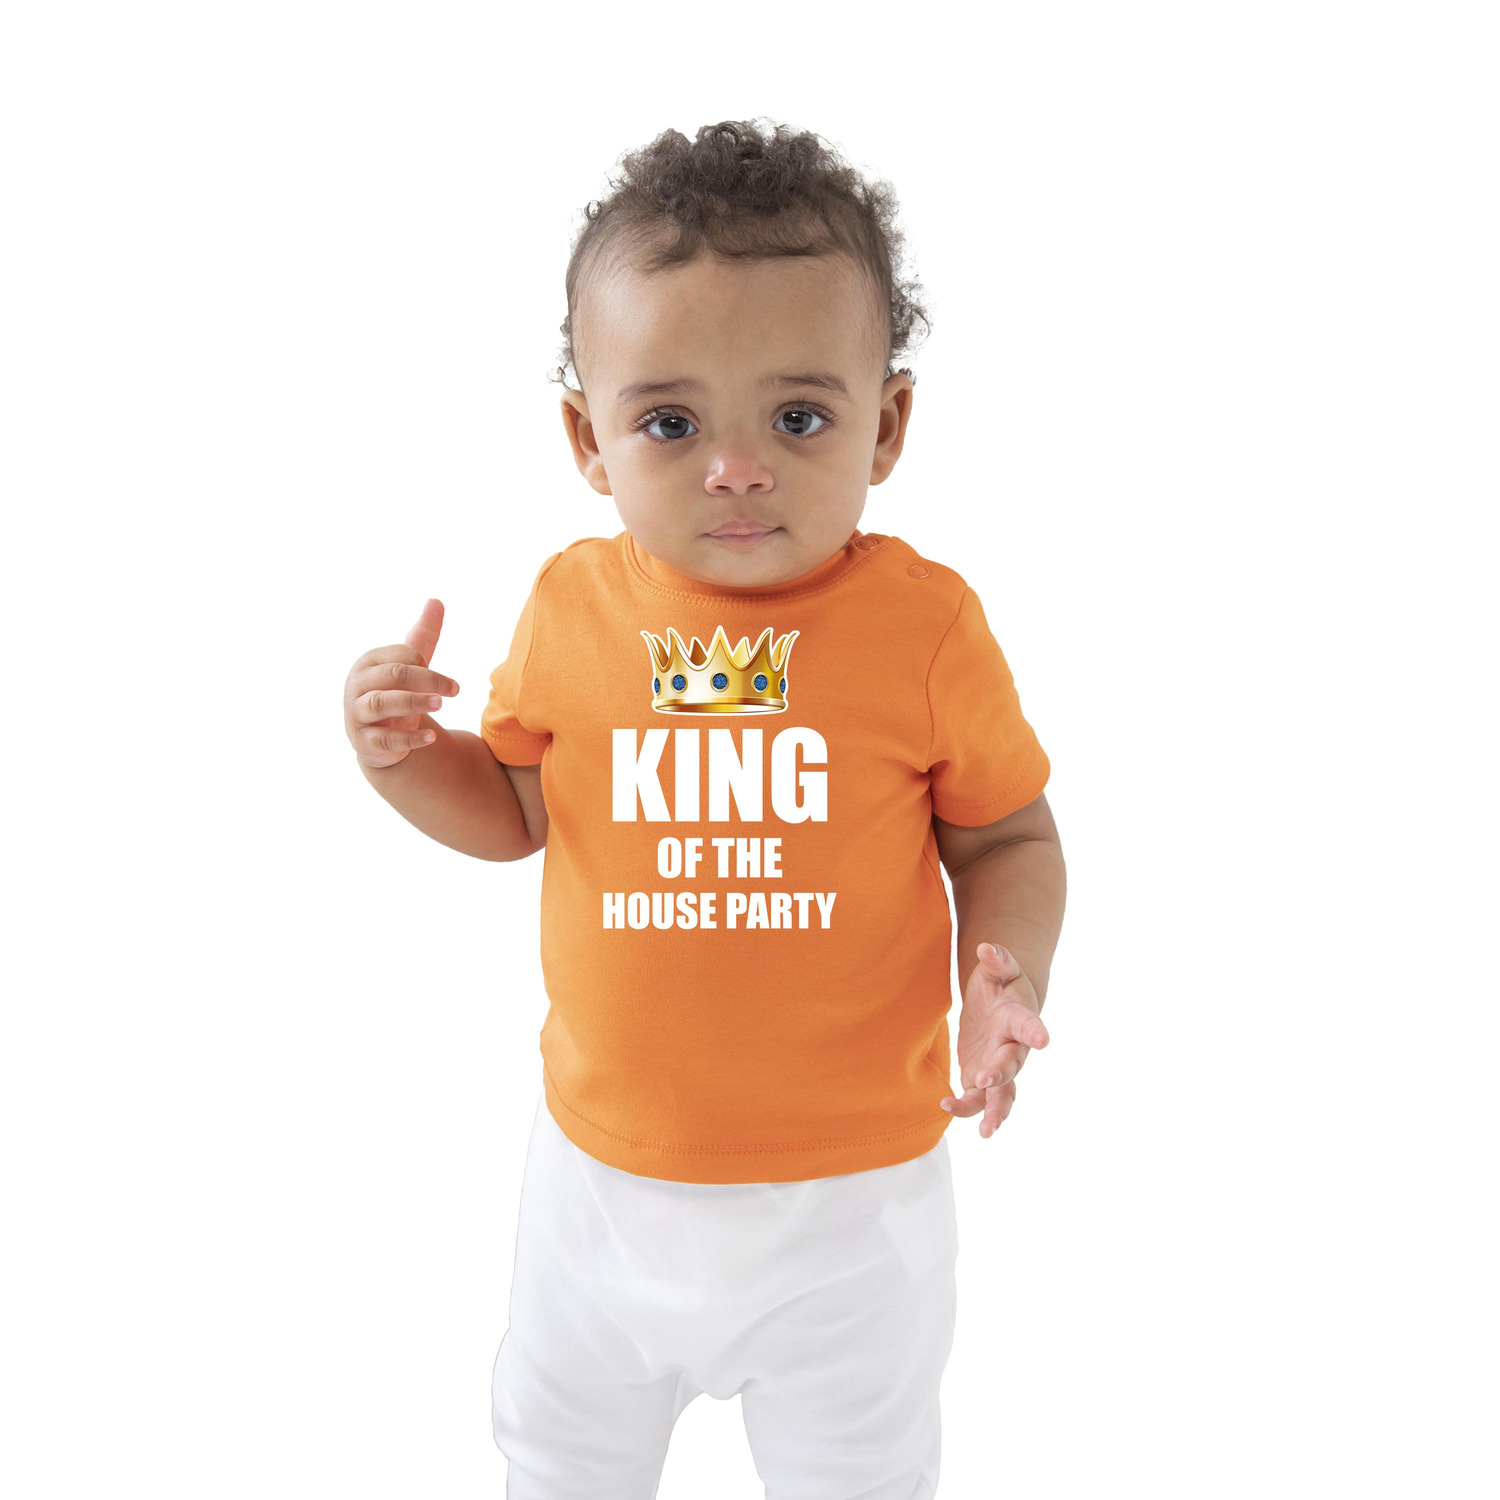 King of the house party met kroon Koningsdag t-shirt oranje baby-peuter voor jongens